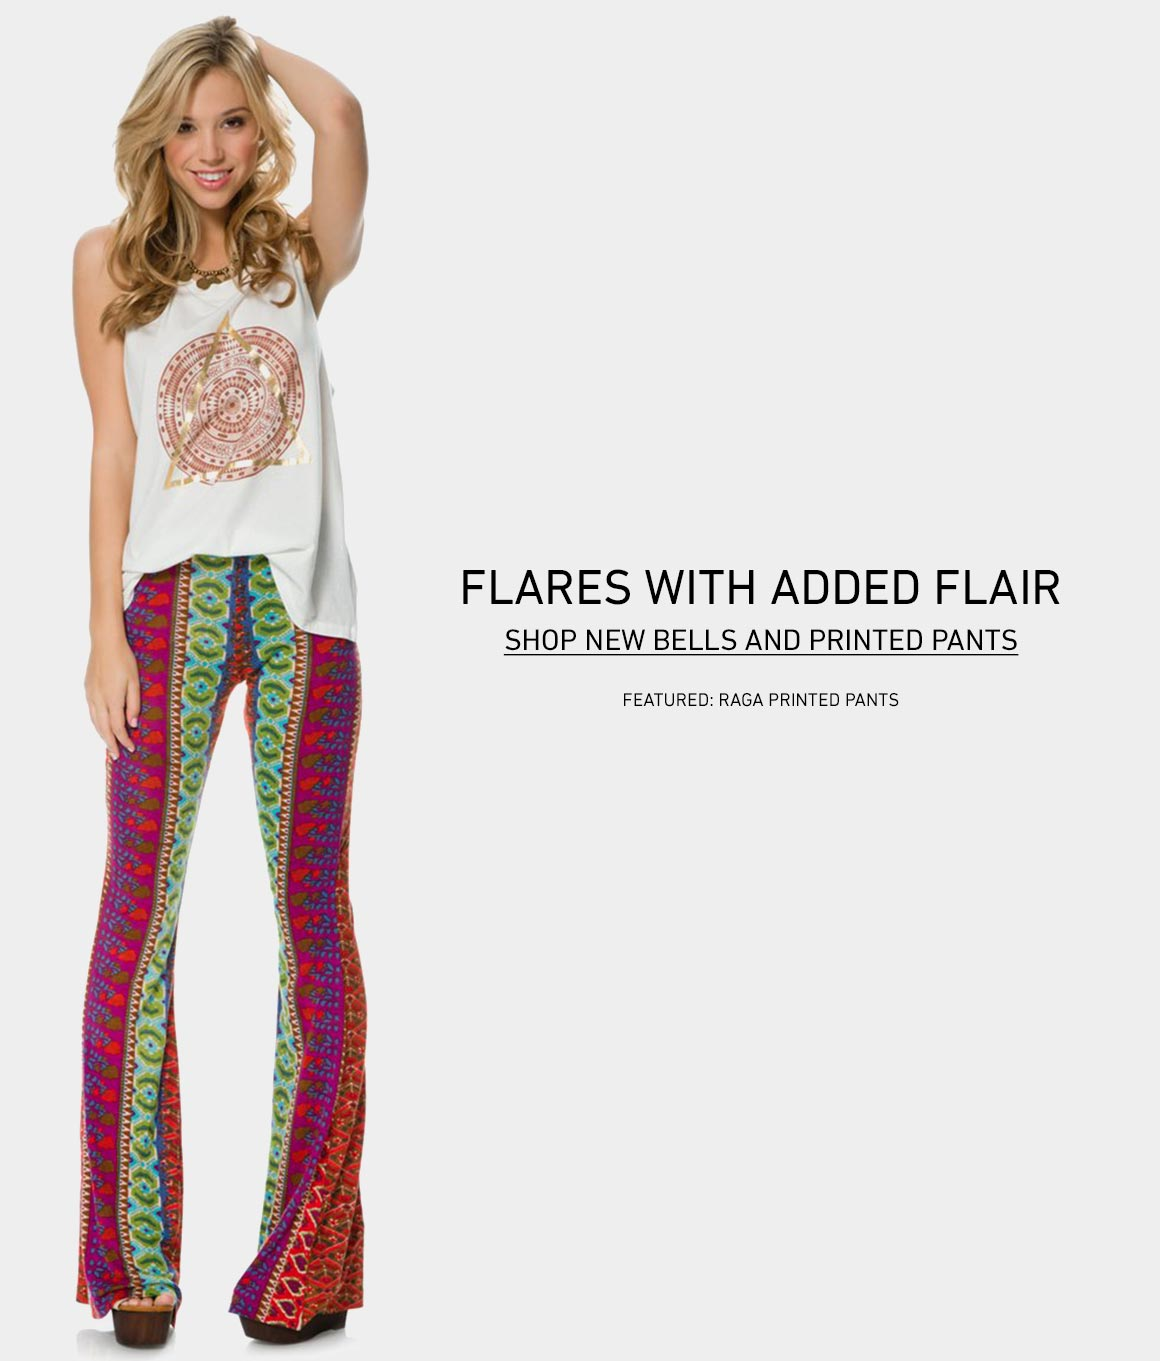 Flares with Flare: New Printed Pants